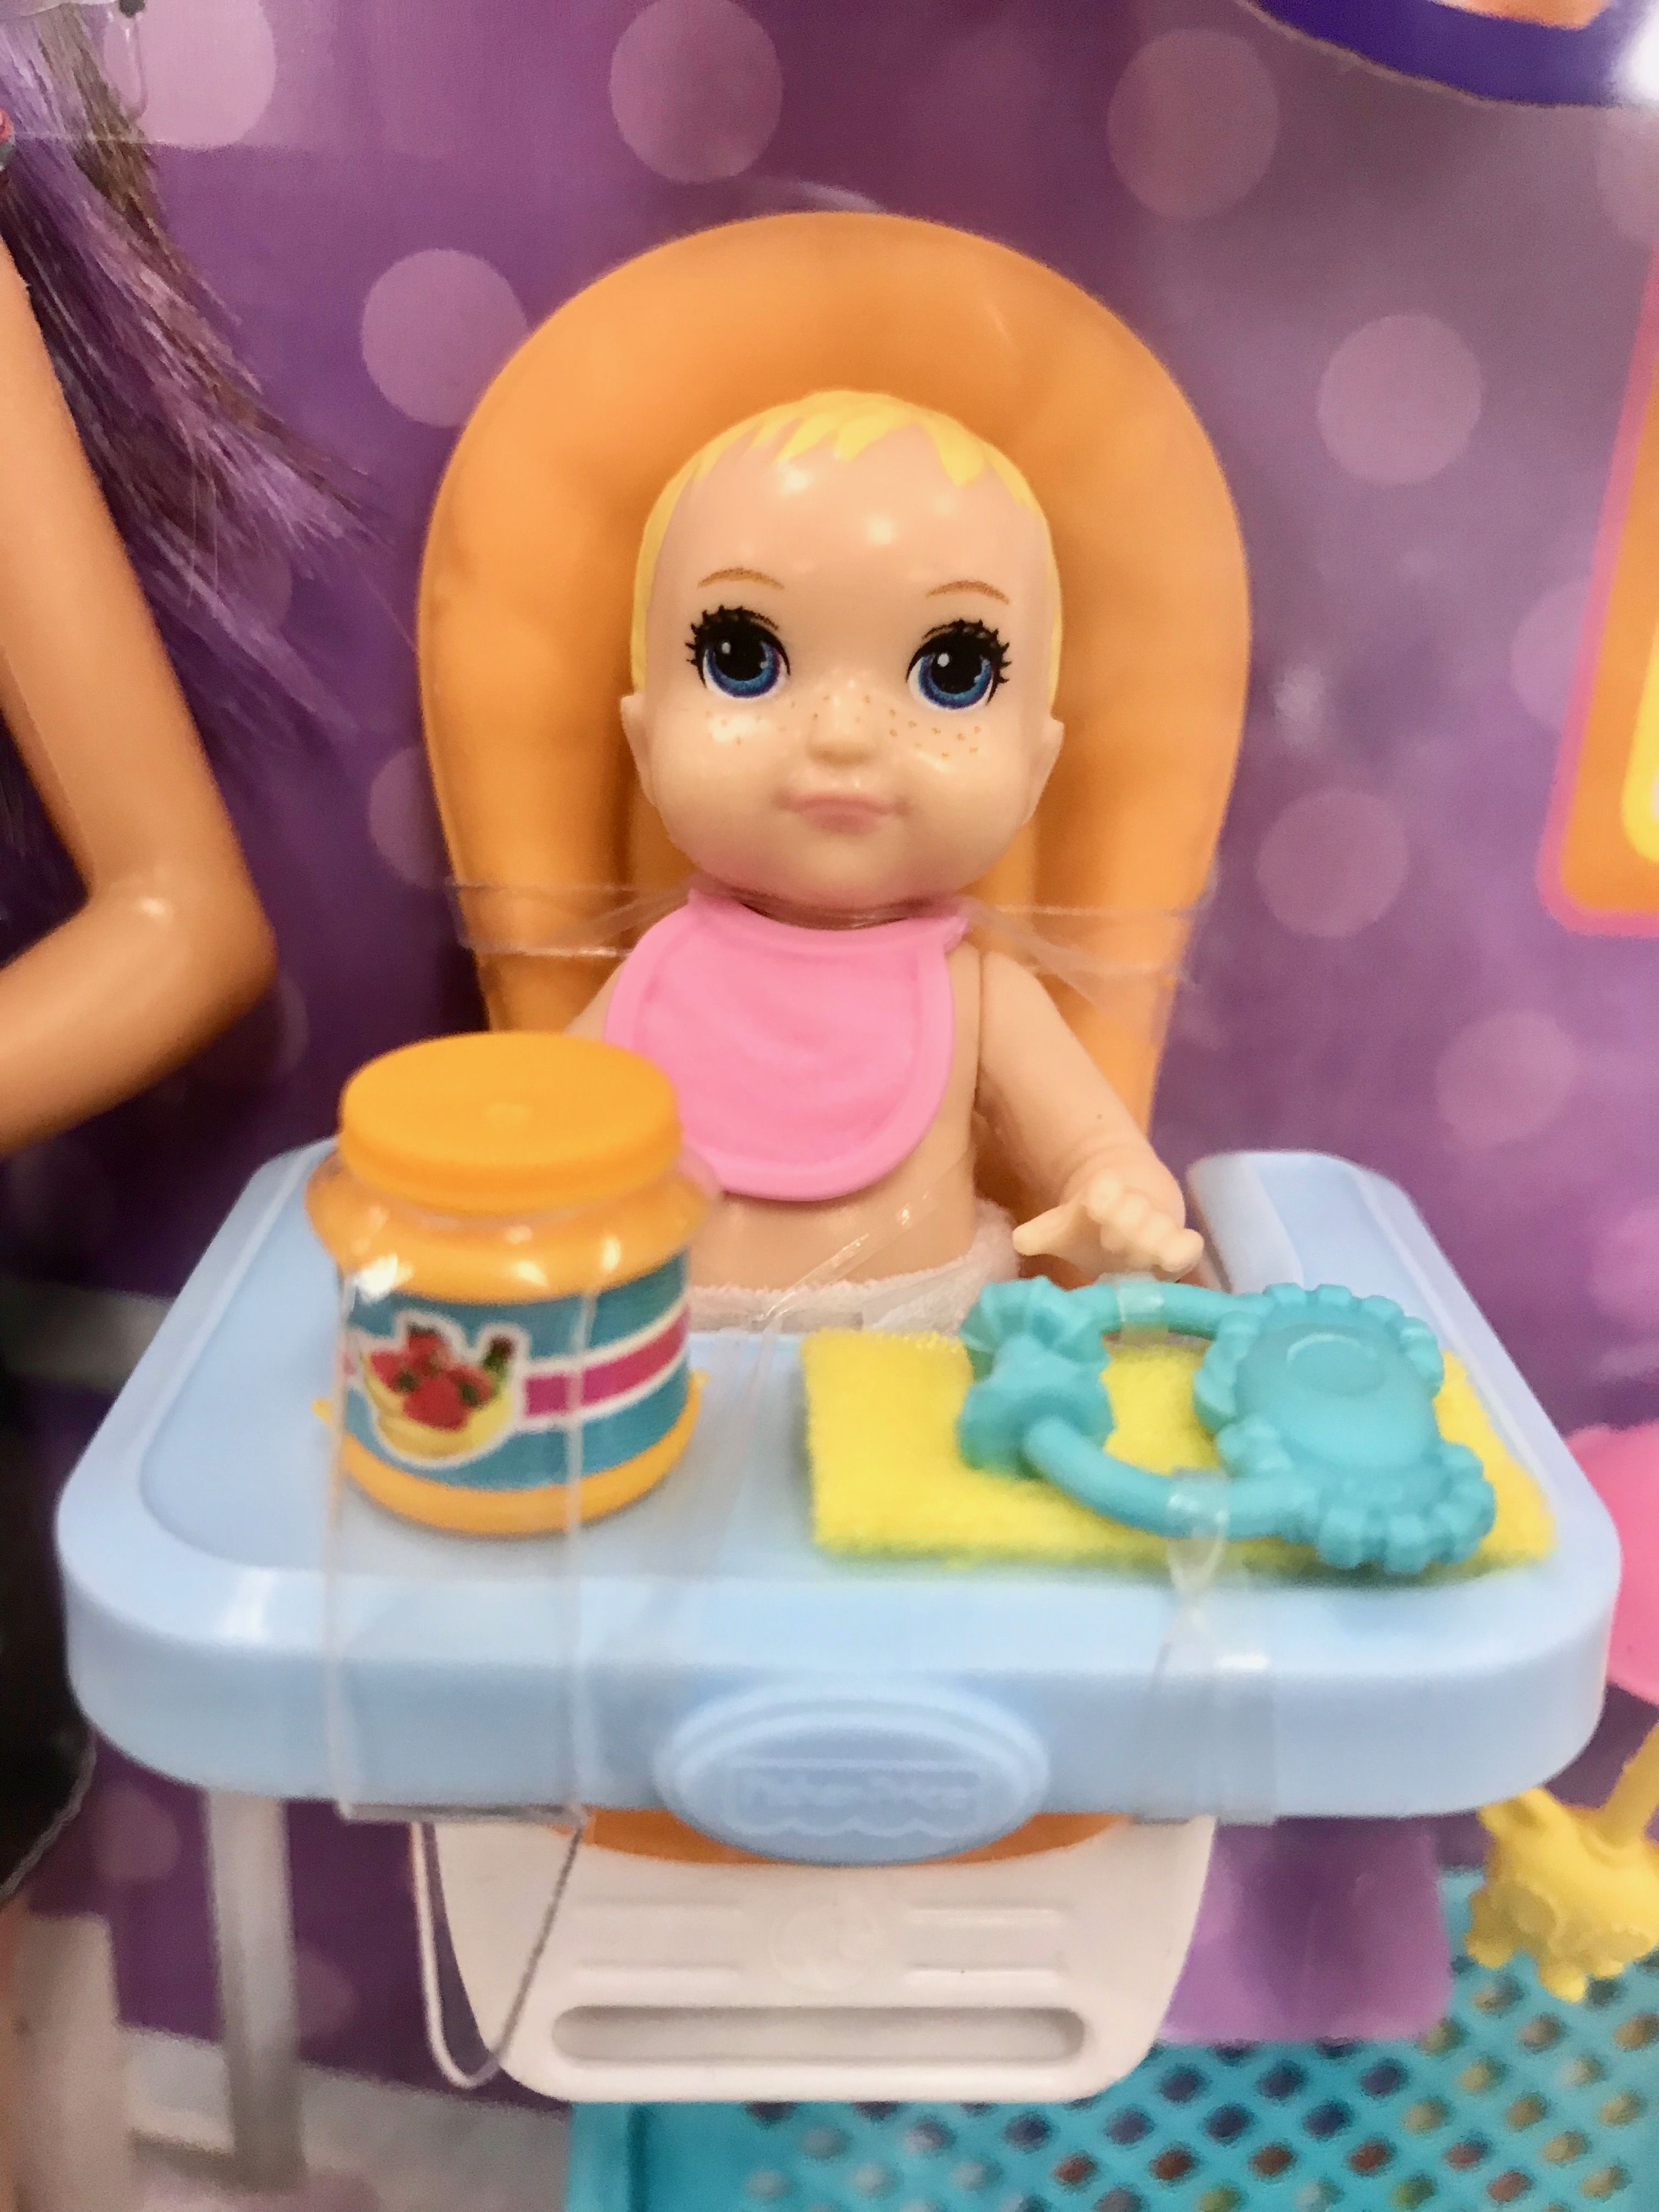 The blonde barbie baby with freckles at Target. She is